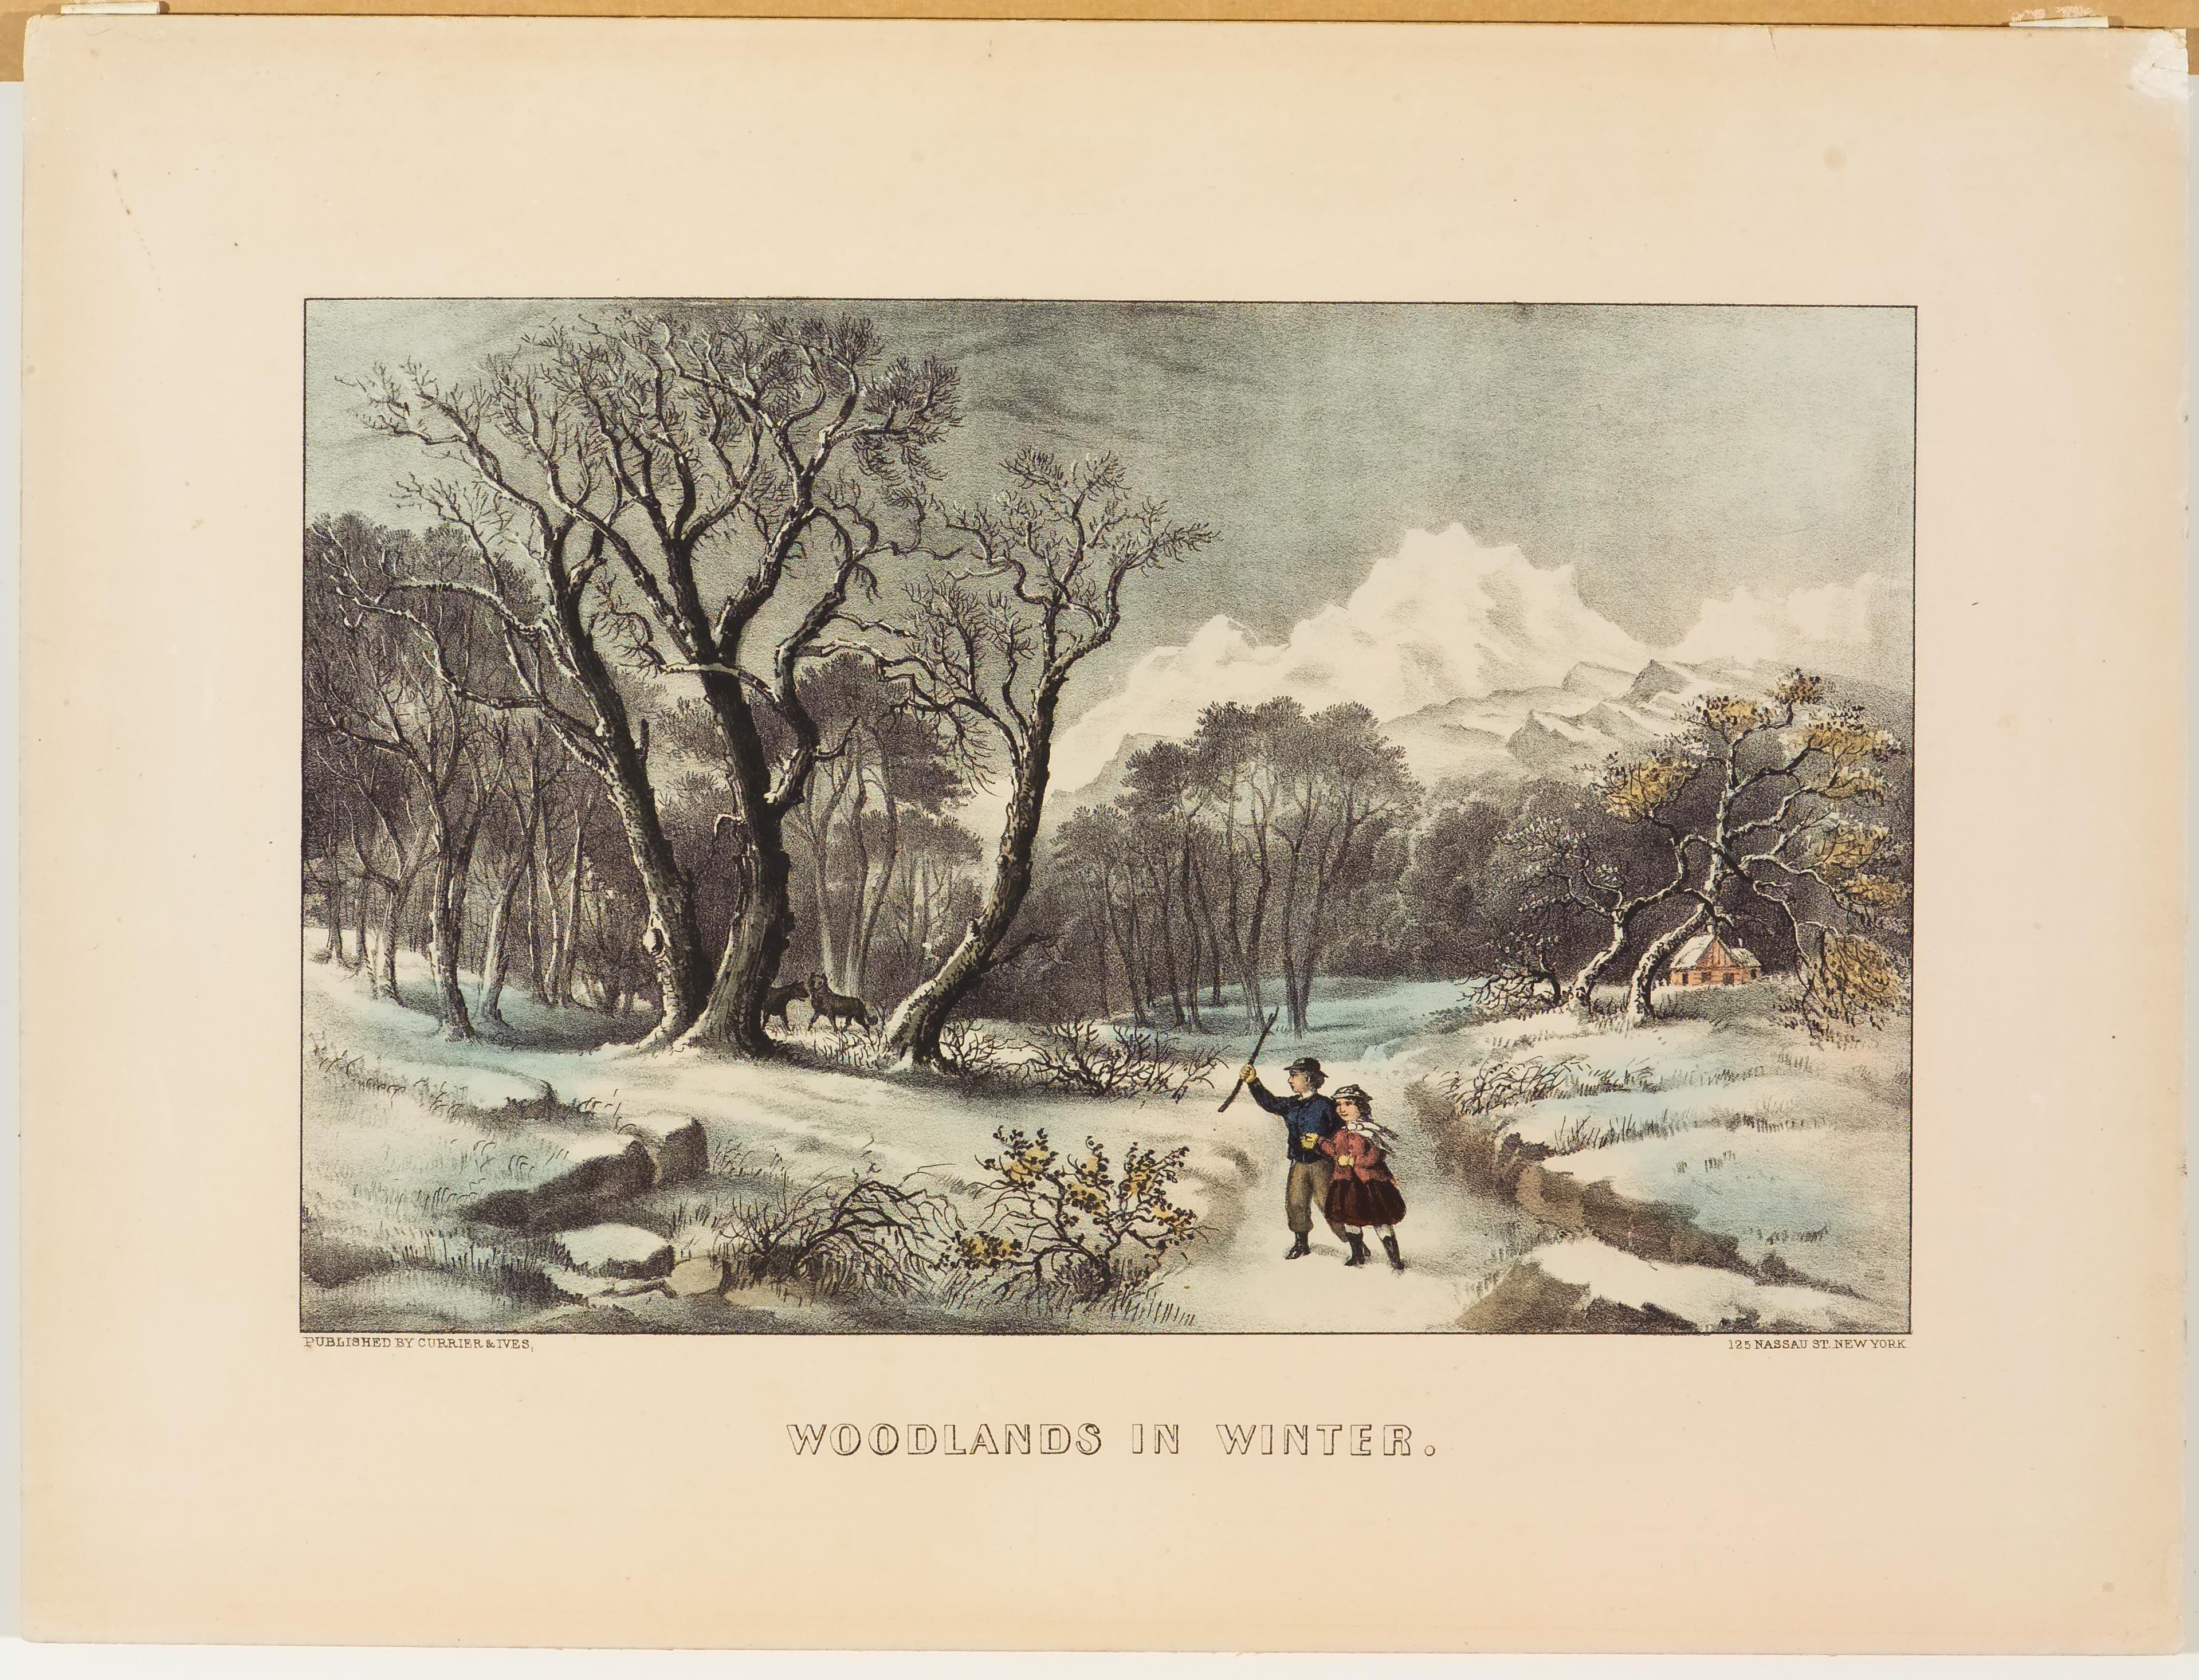 Woodland scene - couple walking down path toward center left